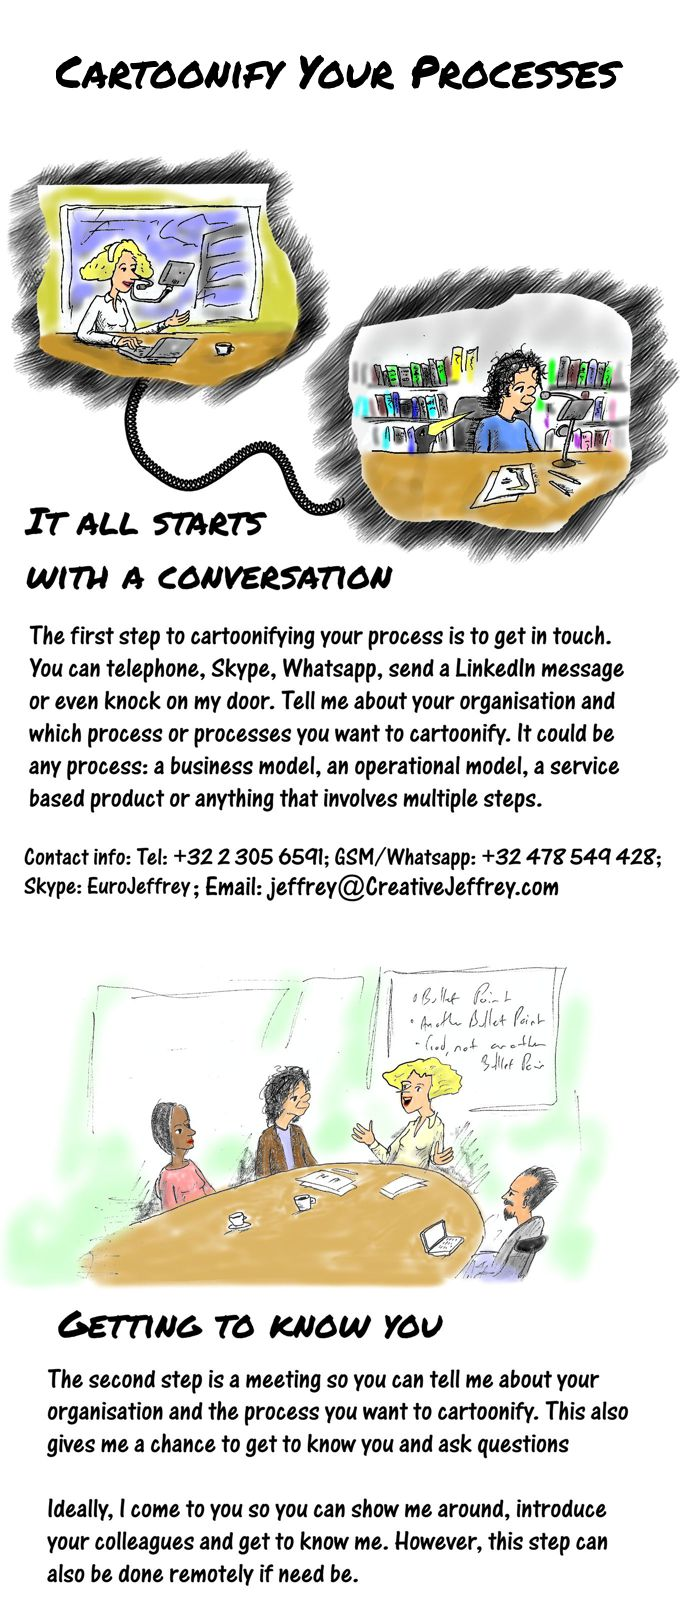 Cartoon story: cartoonify your processes part 1